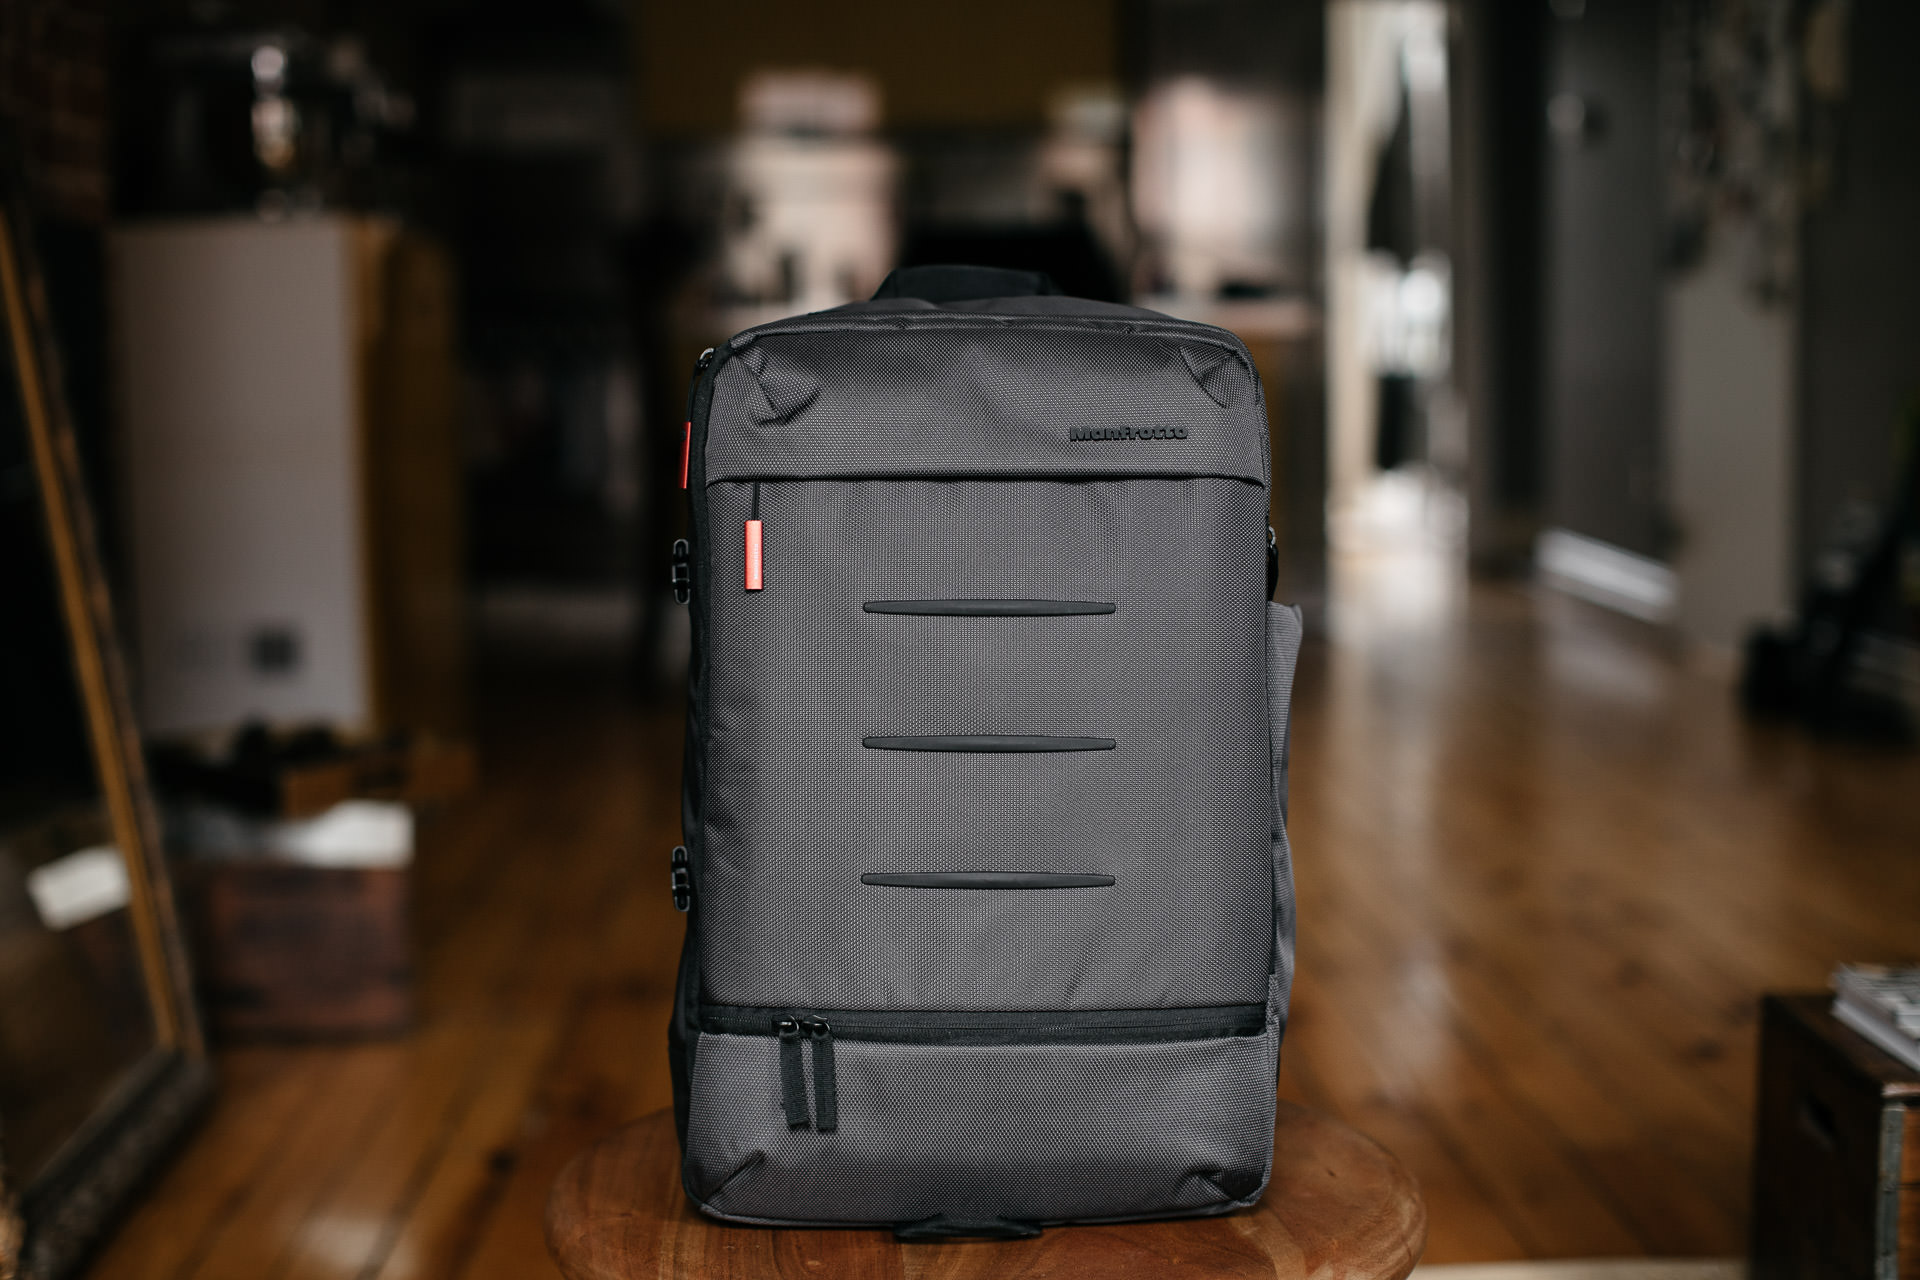 fd4a622c6 Review Manfrotto Manhattan Mover 50 Camera Bag - Jean-Laurent Gaudy ...